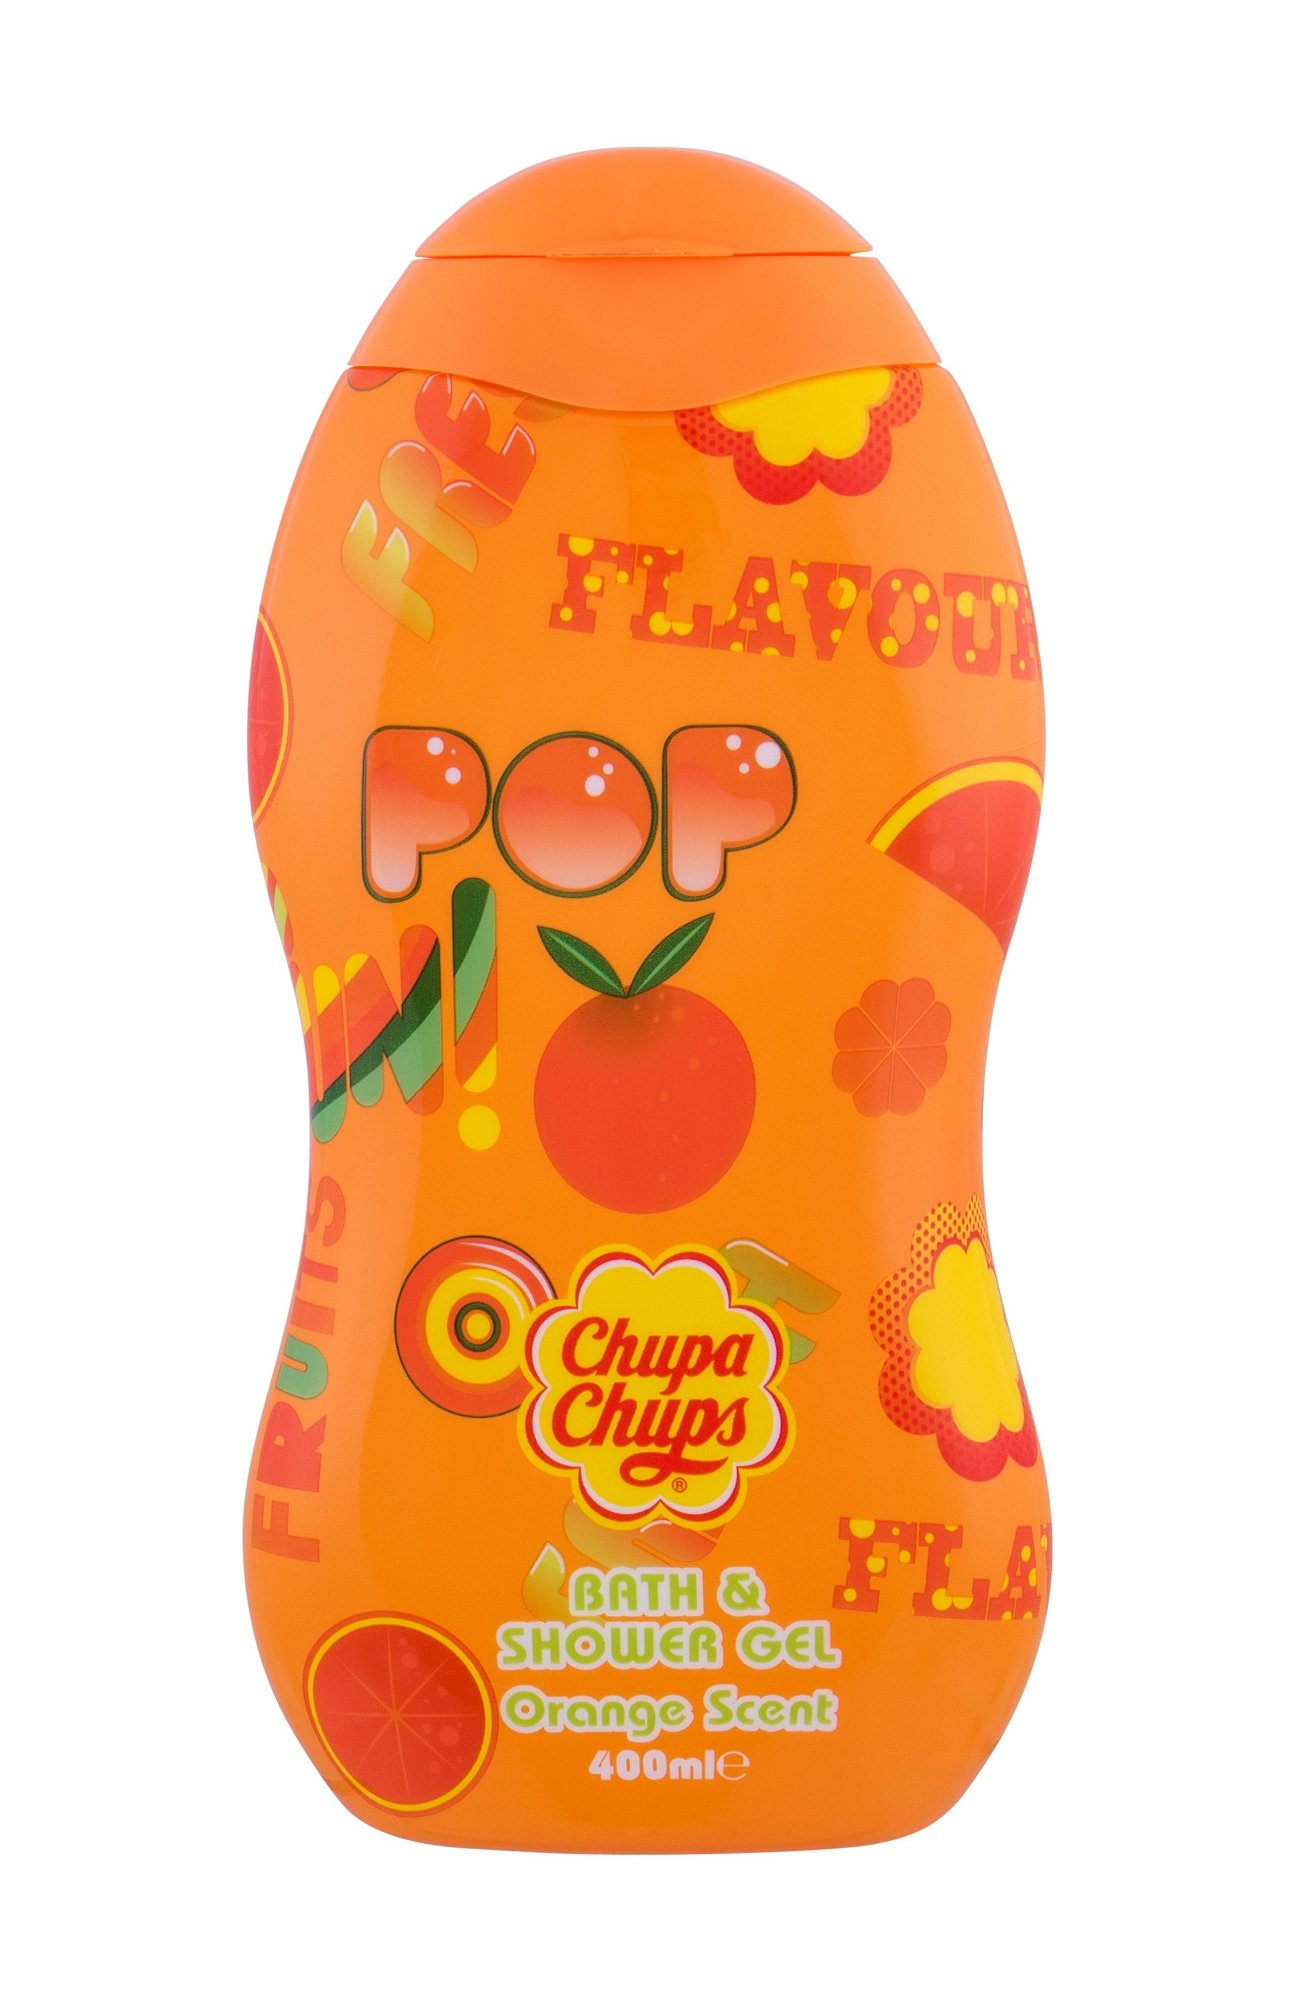 Chupa Chups Bath & Shower Shower Gel 400ml